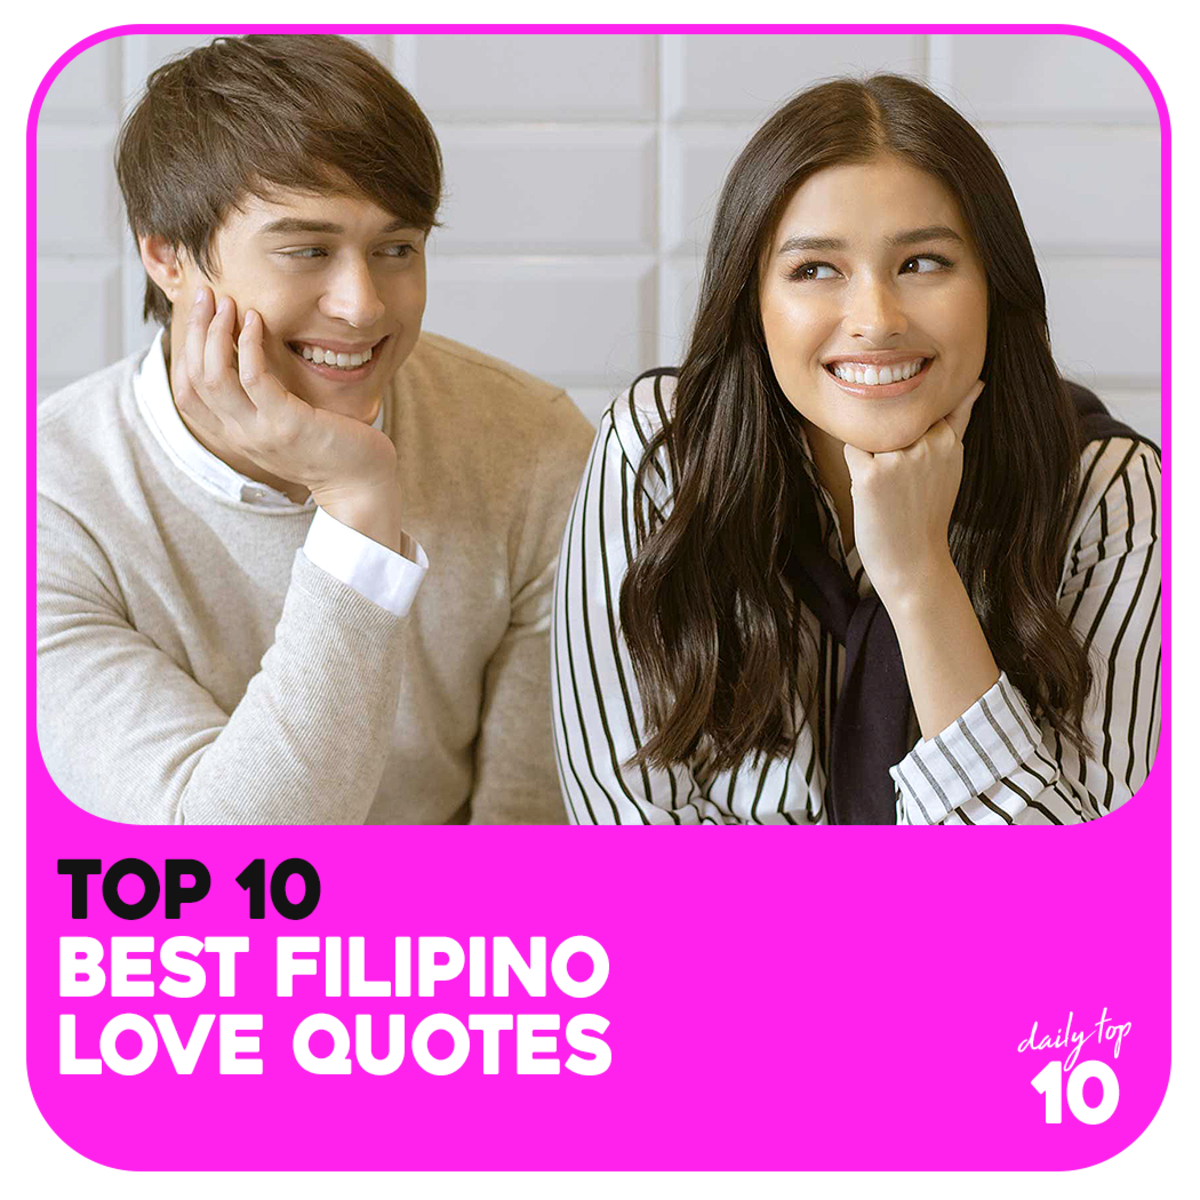 top-10-best-filipino-love-quotes